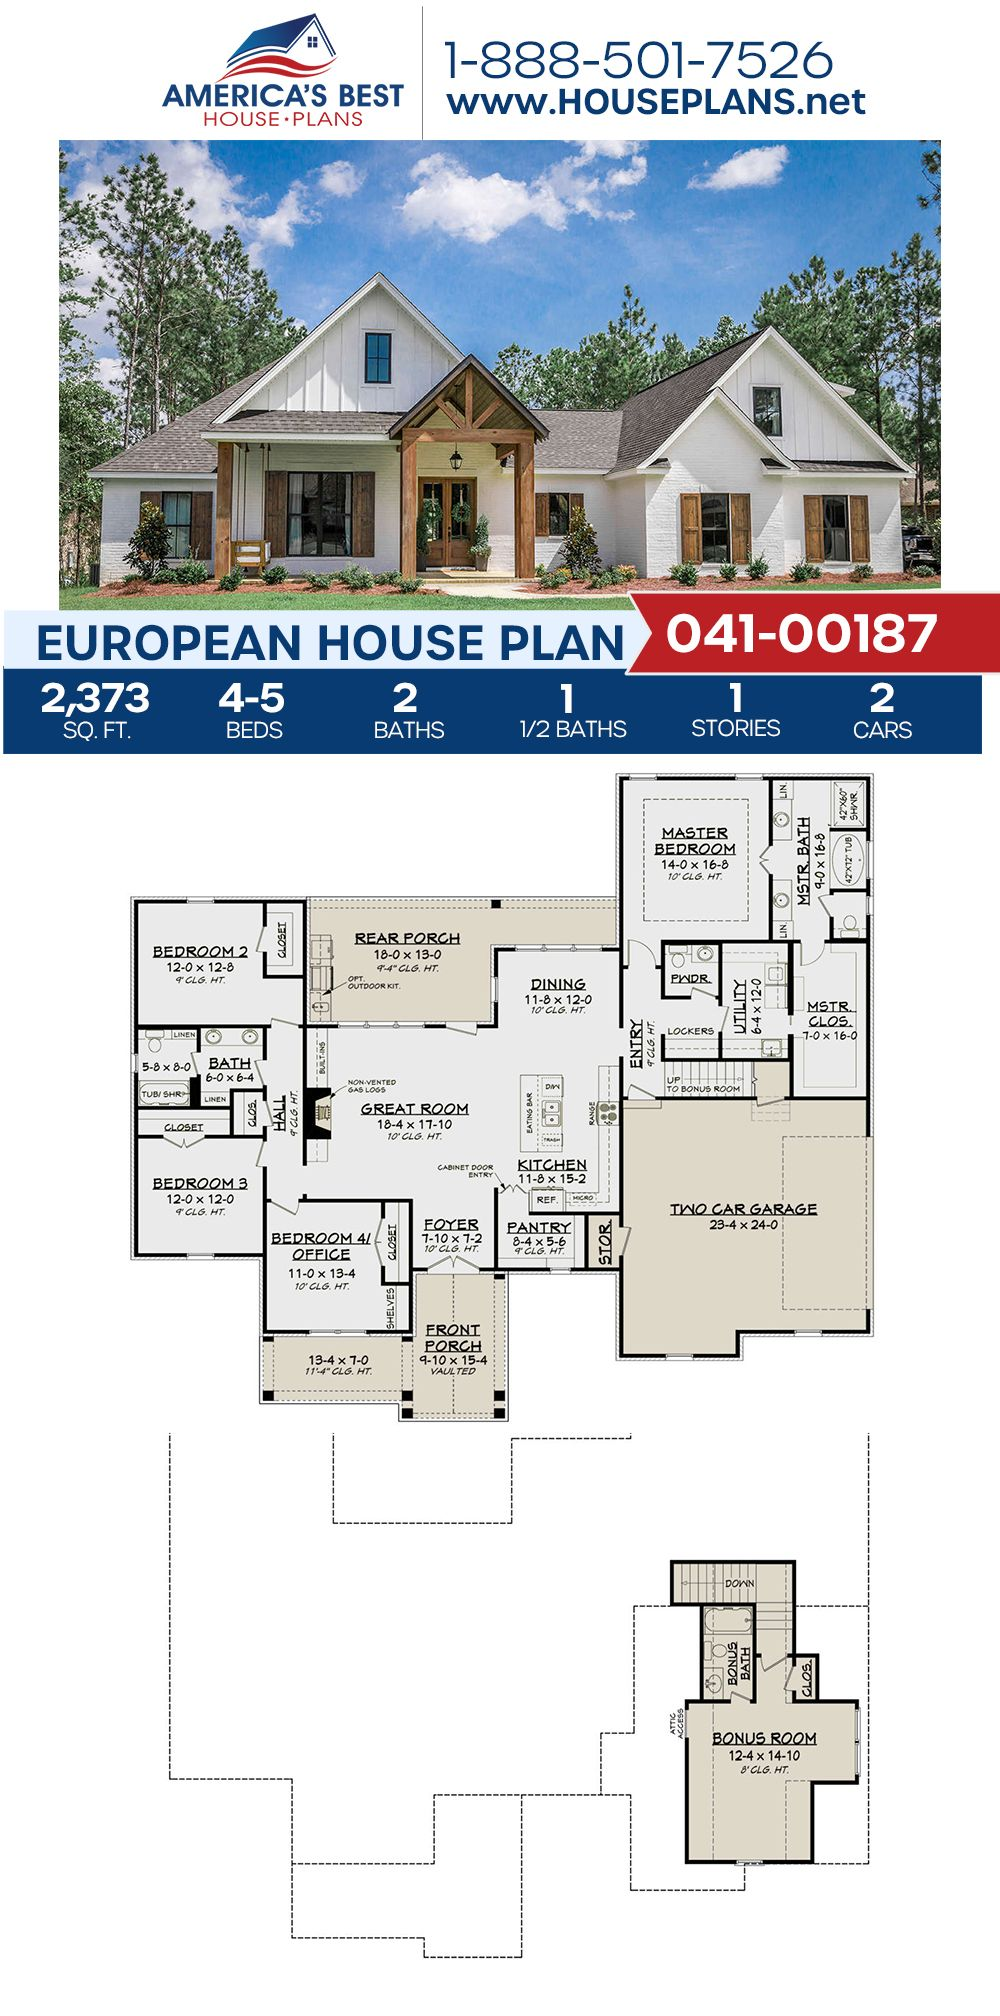 House Plan 041 00187 French Country Plan 2 373 Square Feet 4 5 Bedrooms 2 5 Bathrooms In 2020 Craftsman Style House Plans Farmhouse Floor Plans House Plans Farmhouse